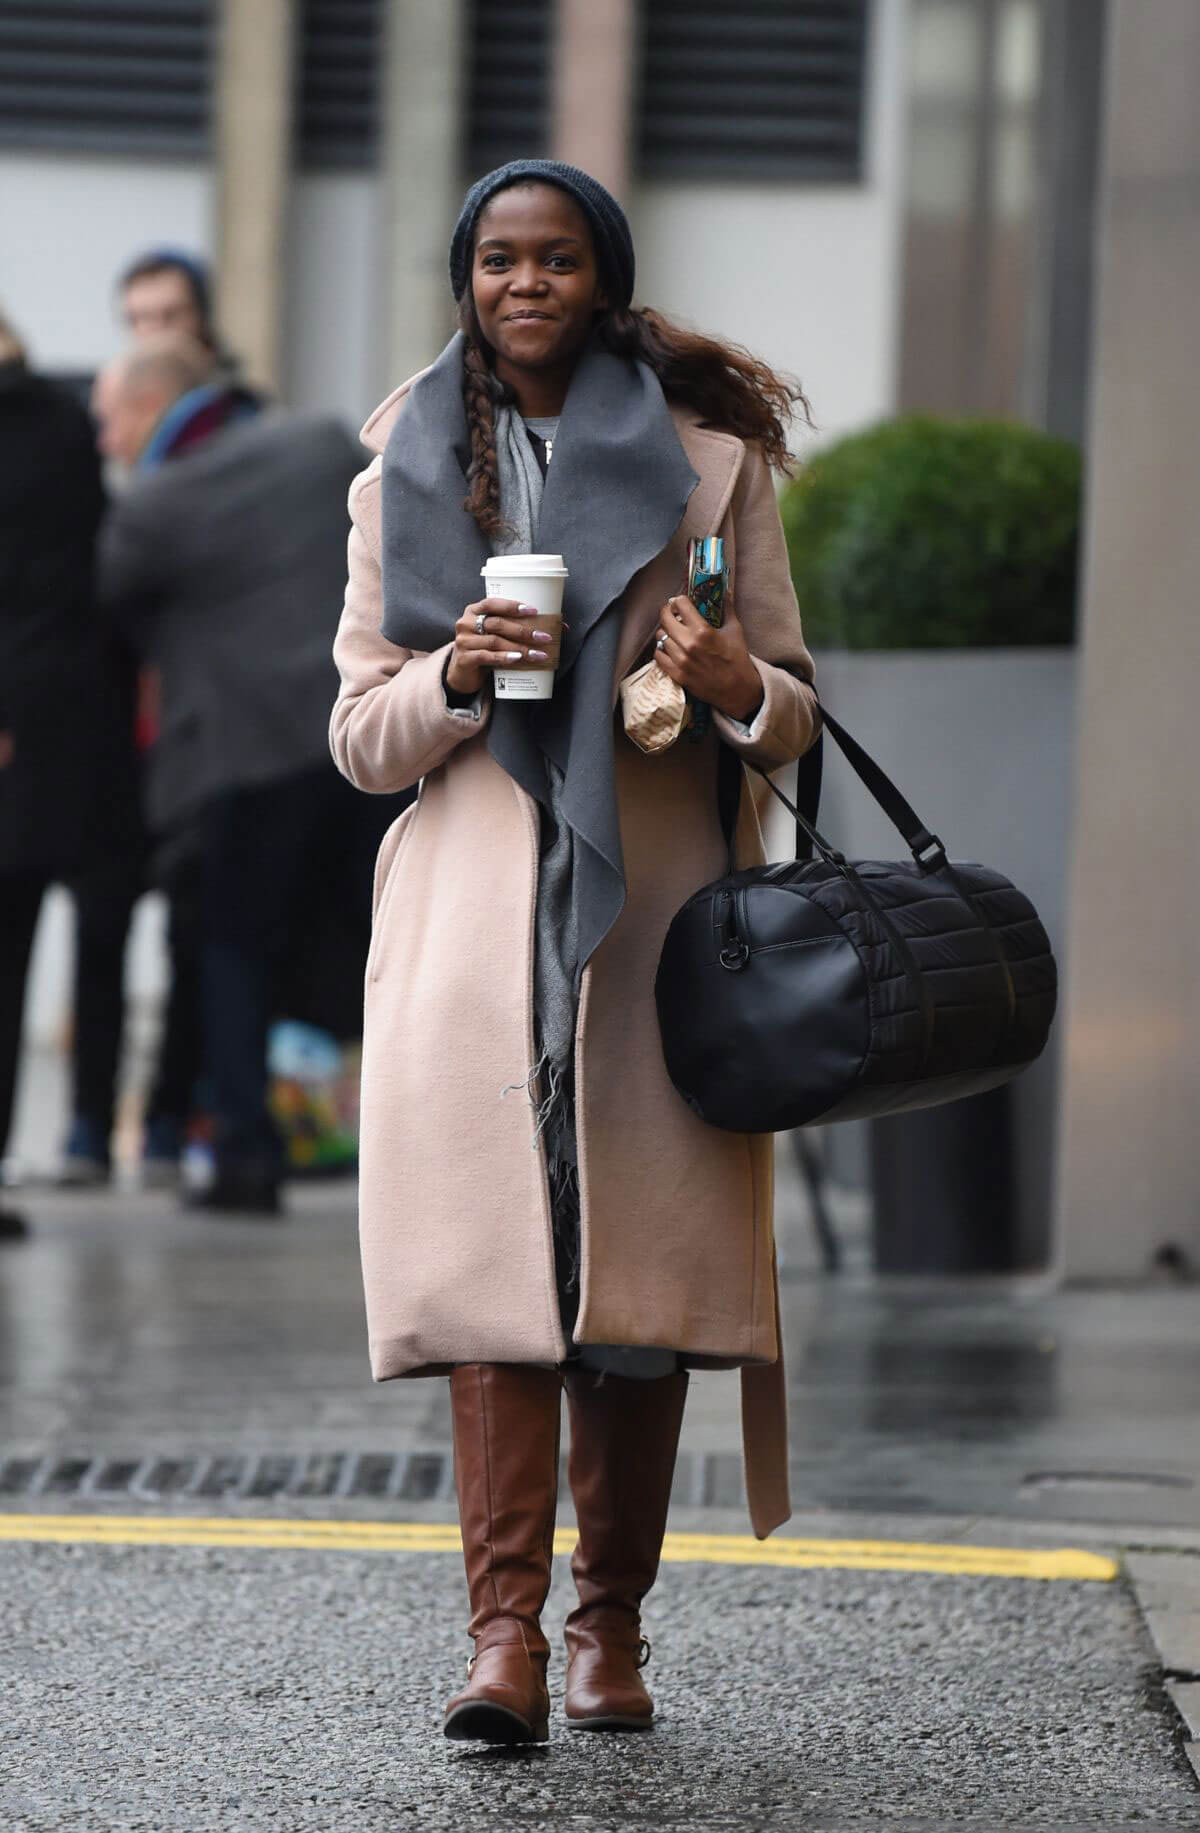 Oti Mabuse Leaves Her Hotel in Birmingham